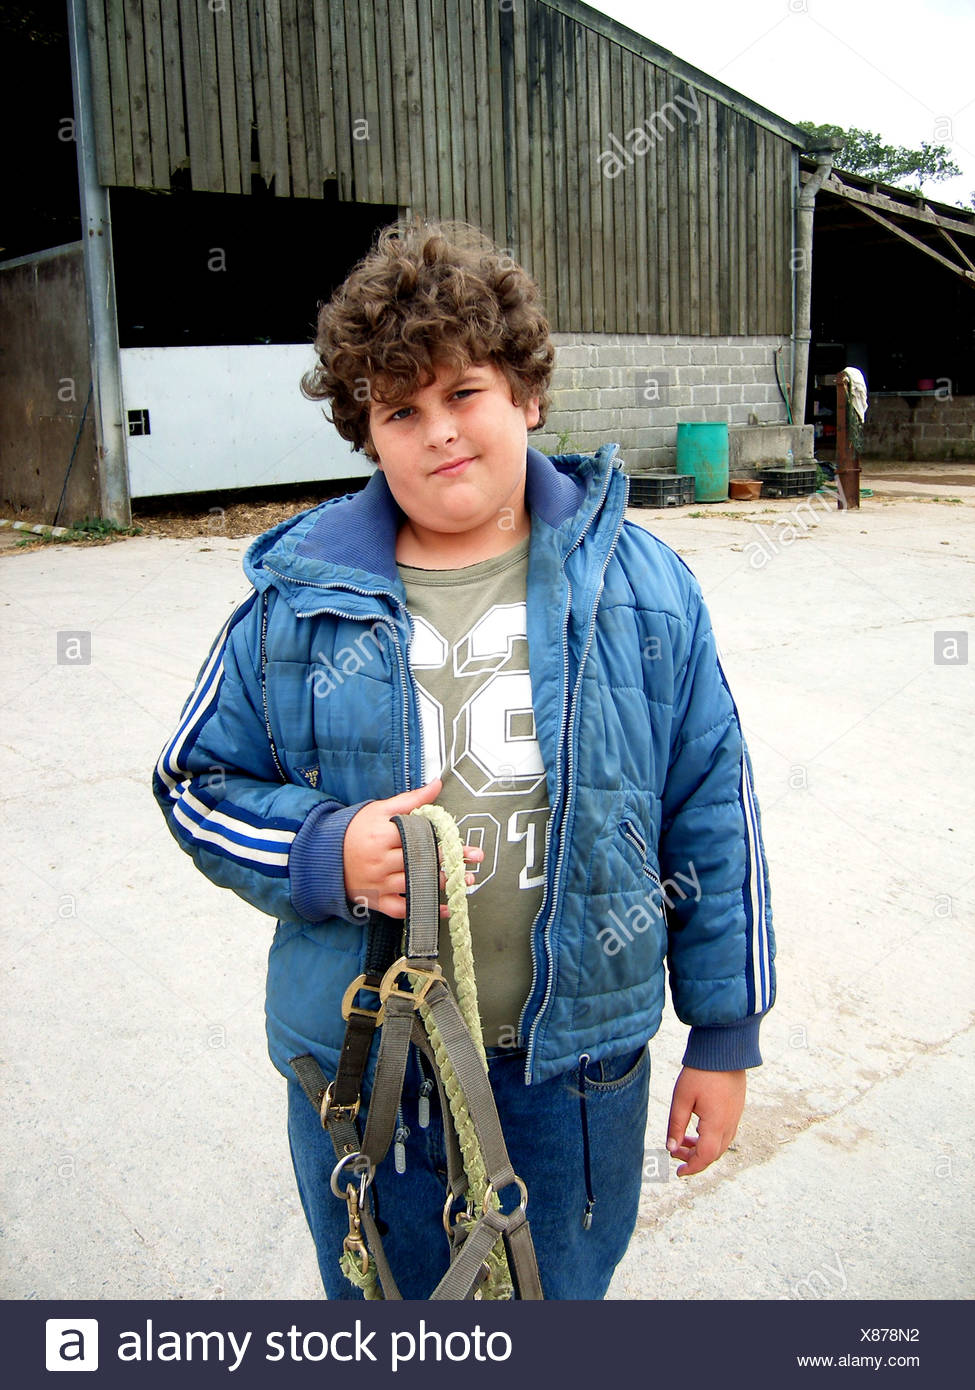 A brown curly haired male, wearing blue jeans, a khaki top and blue quilted jacket, holding a horse's bridle Caroline Bettaney - Stock Image